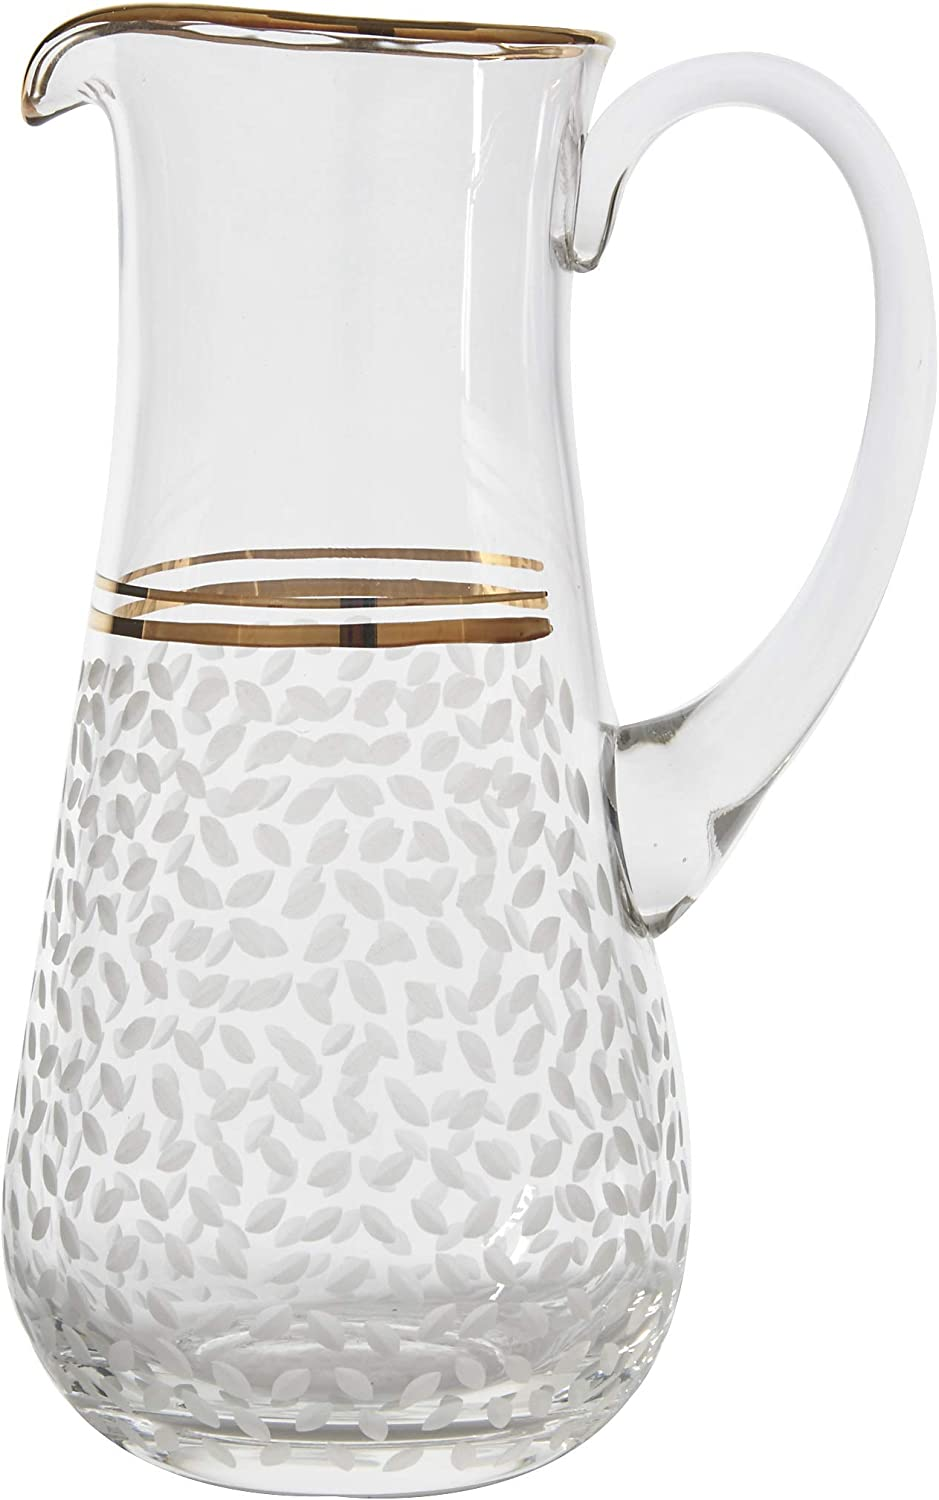 Amazon Com Glazze Crystal Helen Handcrafted Water Pitcher Painted 24k Gold Trim Detailing Hand Cut Raindrops Pattern Ideal Wedding Housewarming Gift 10 H 42 Oz Capacity Carafes Pitchers